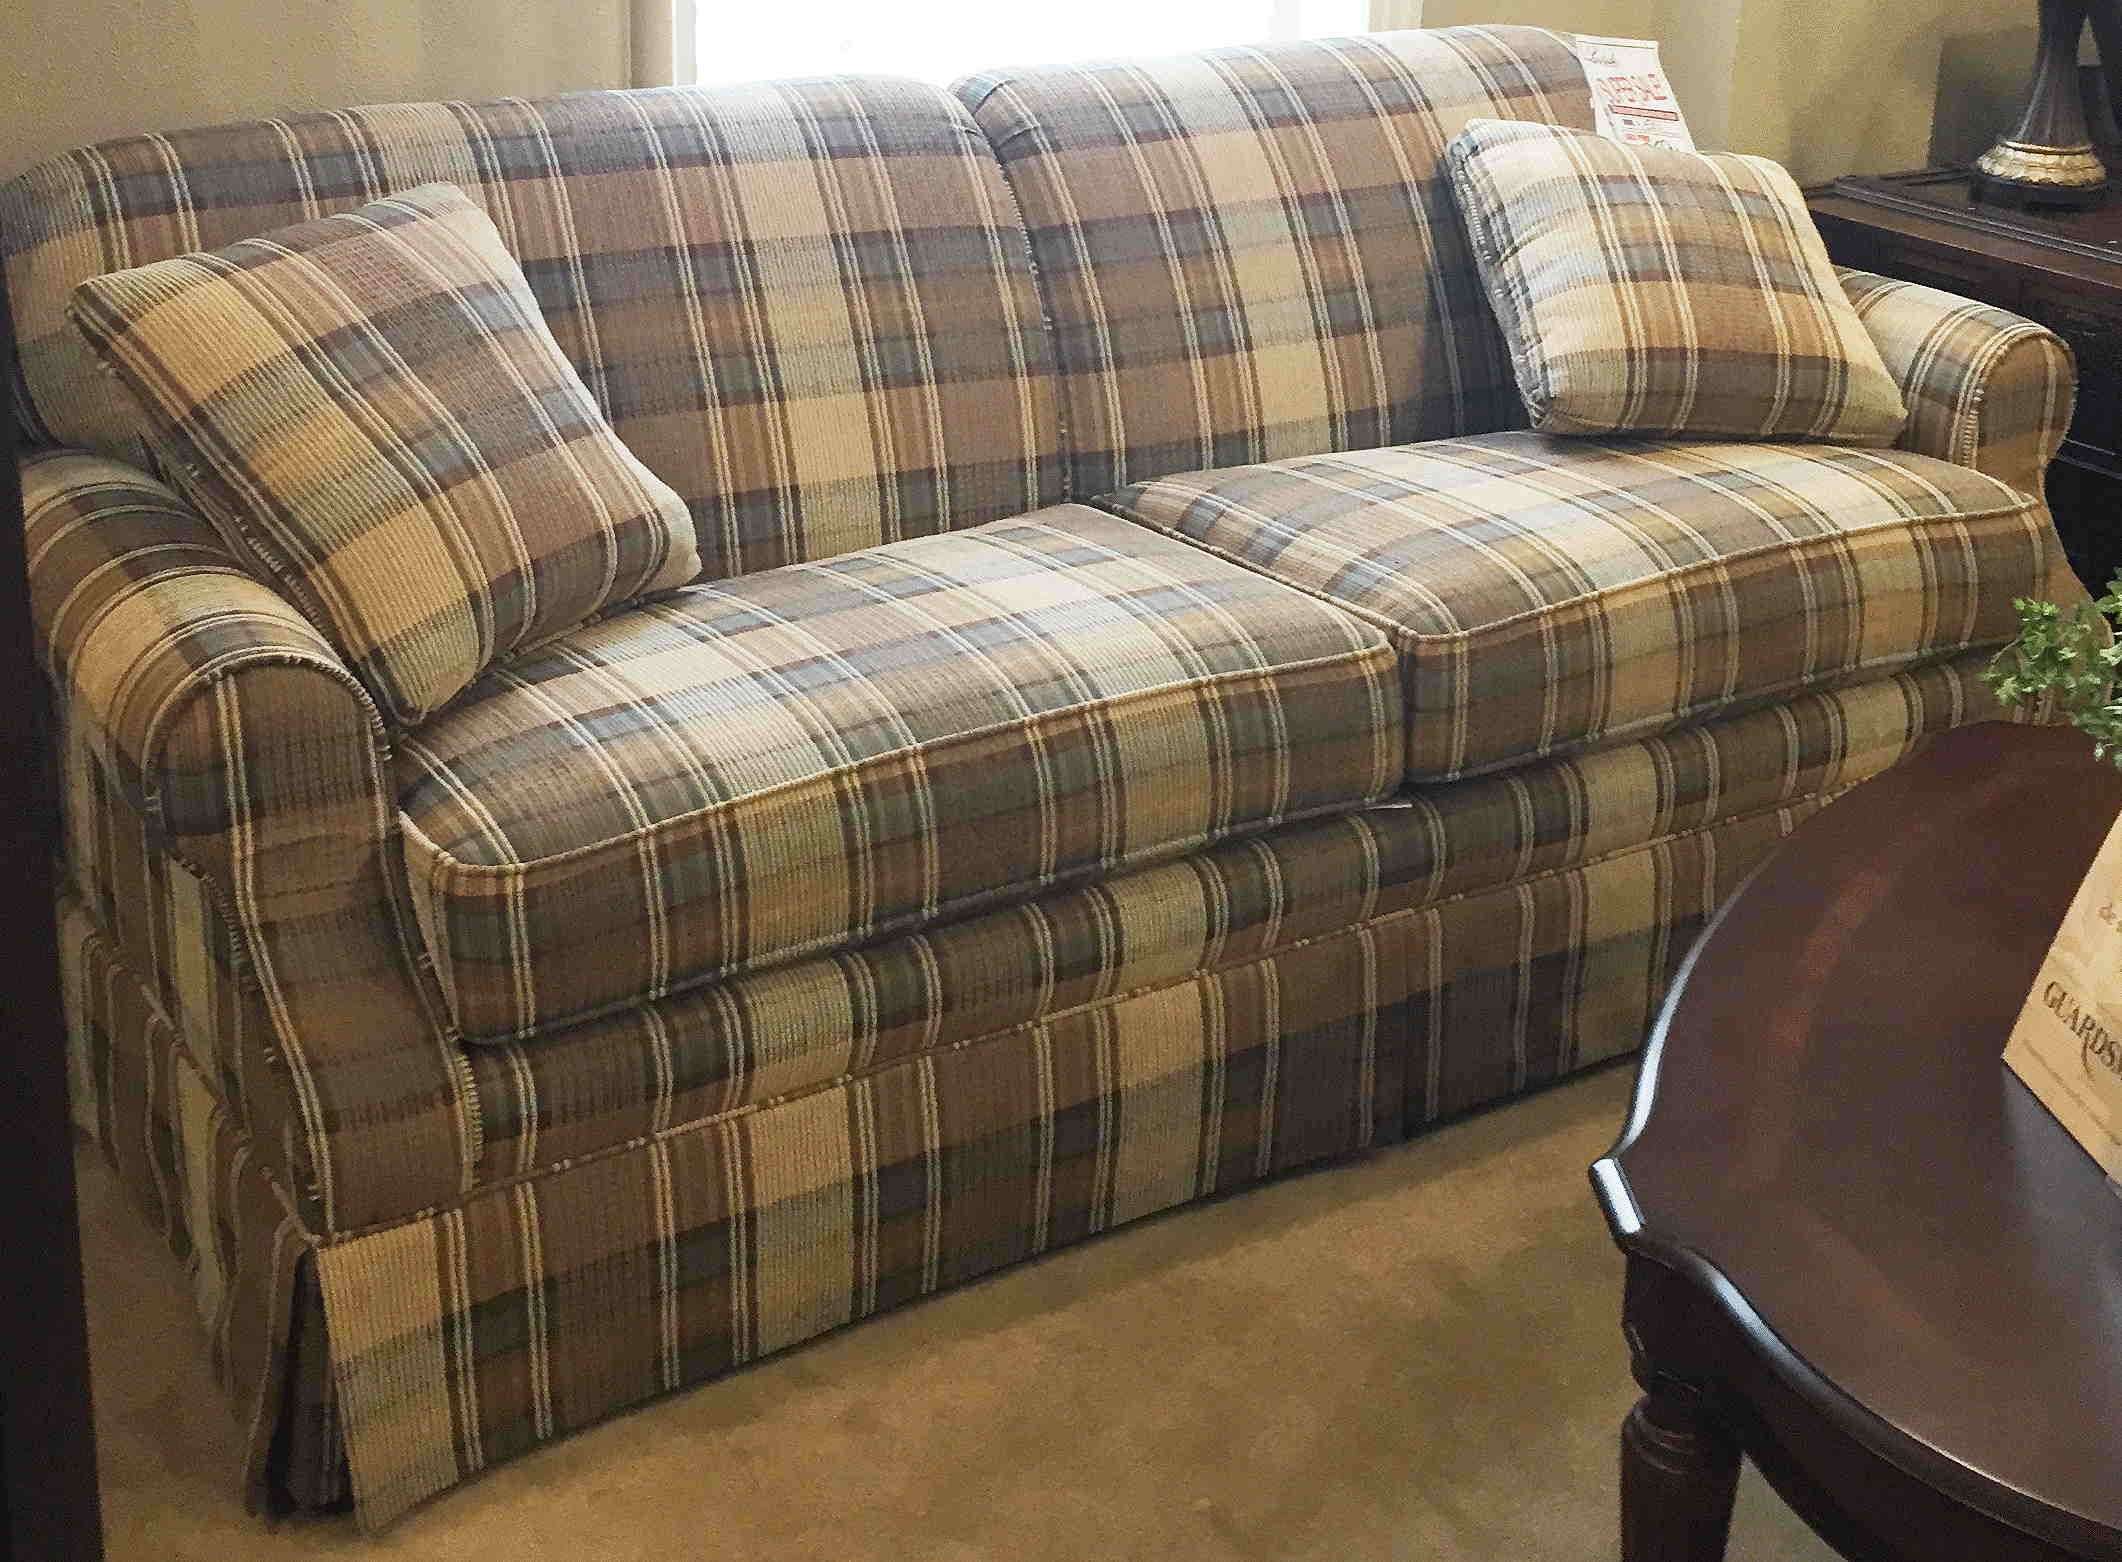 Plaid Couch Best Collections Of Sofas And Couches Sofacouchs Com Plaid Sofa Couches For Sale Plaid Couch